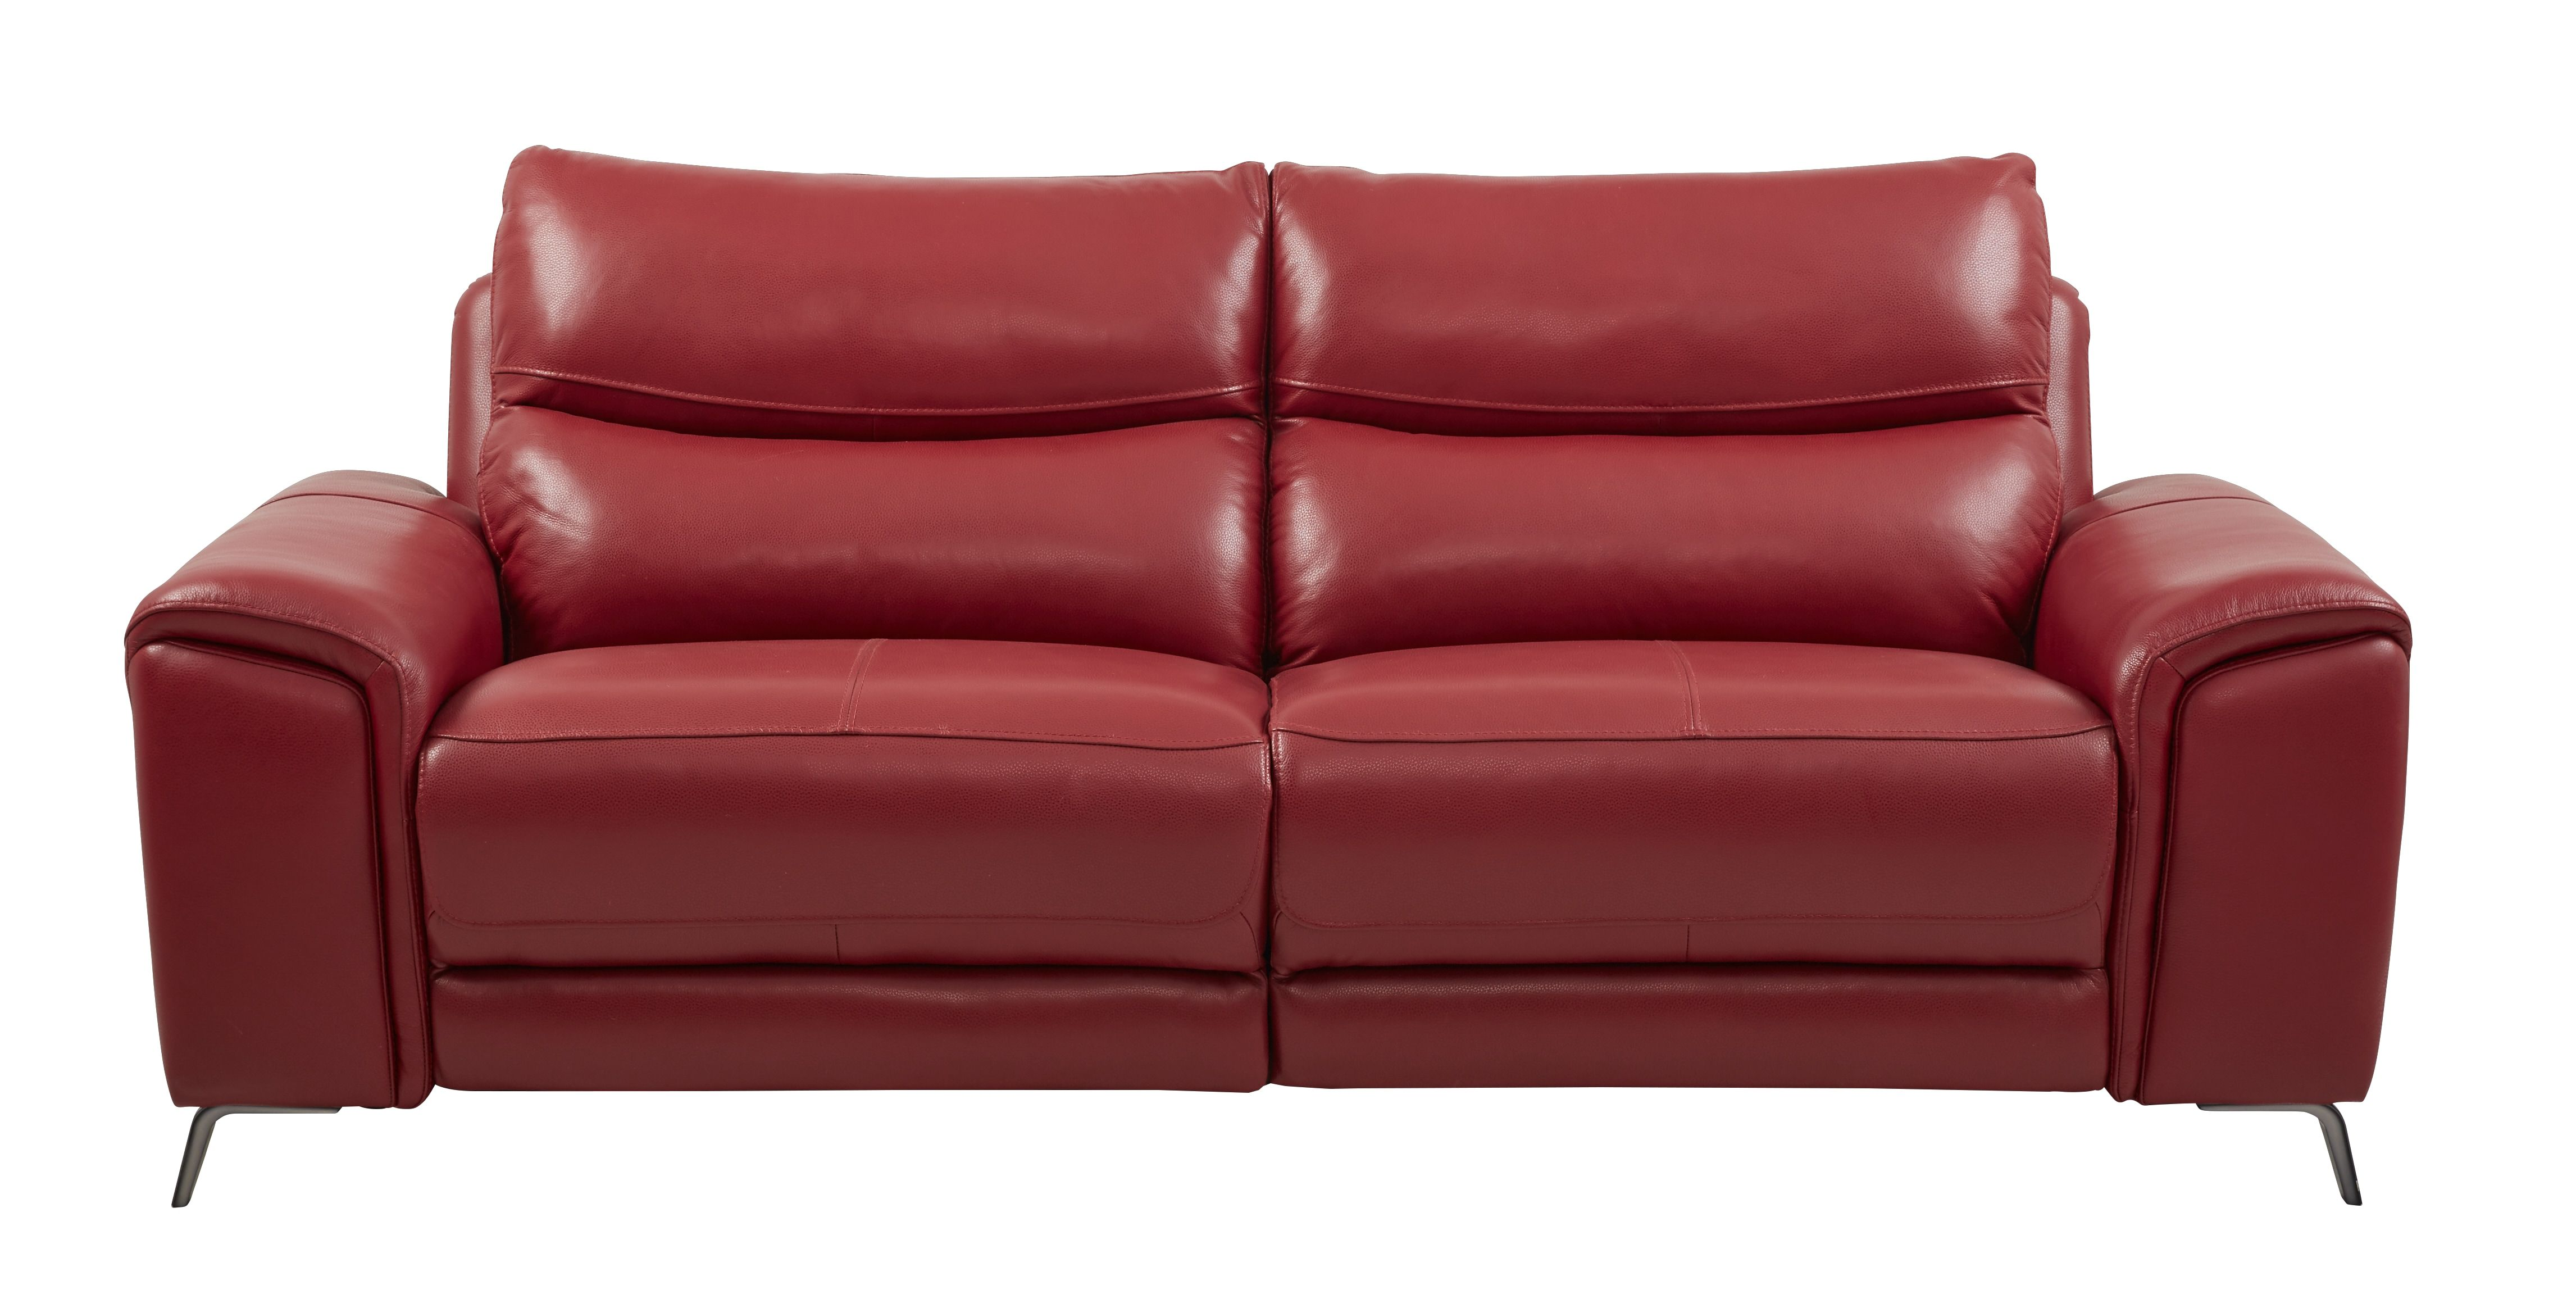 Astoria Heights Red Leather Power Reclining Sofa | reclining ...